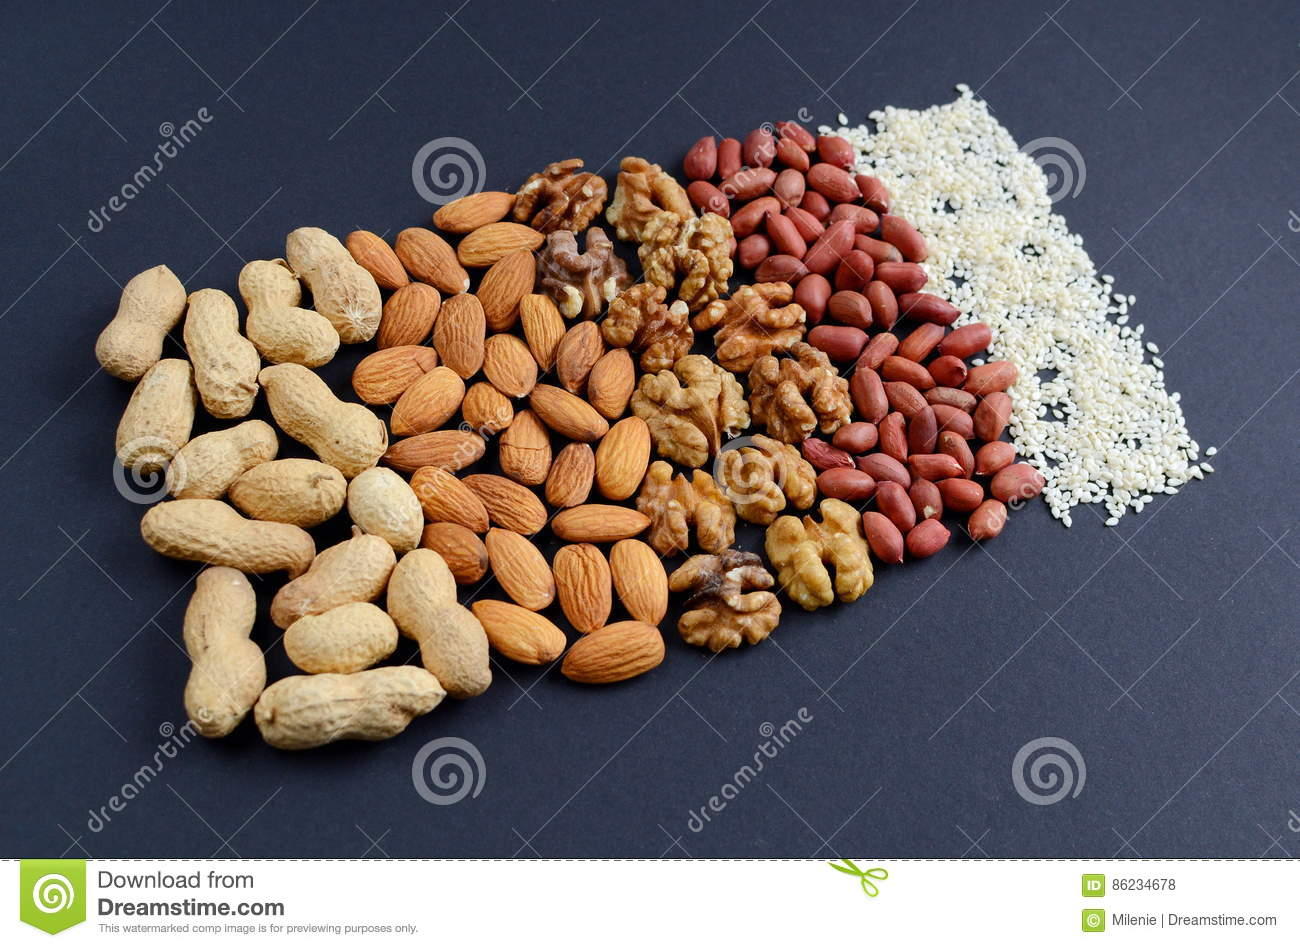 Assorted Mixed Nuts, Peanuts, Almonds, Walnuts And Sesame